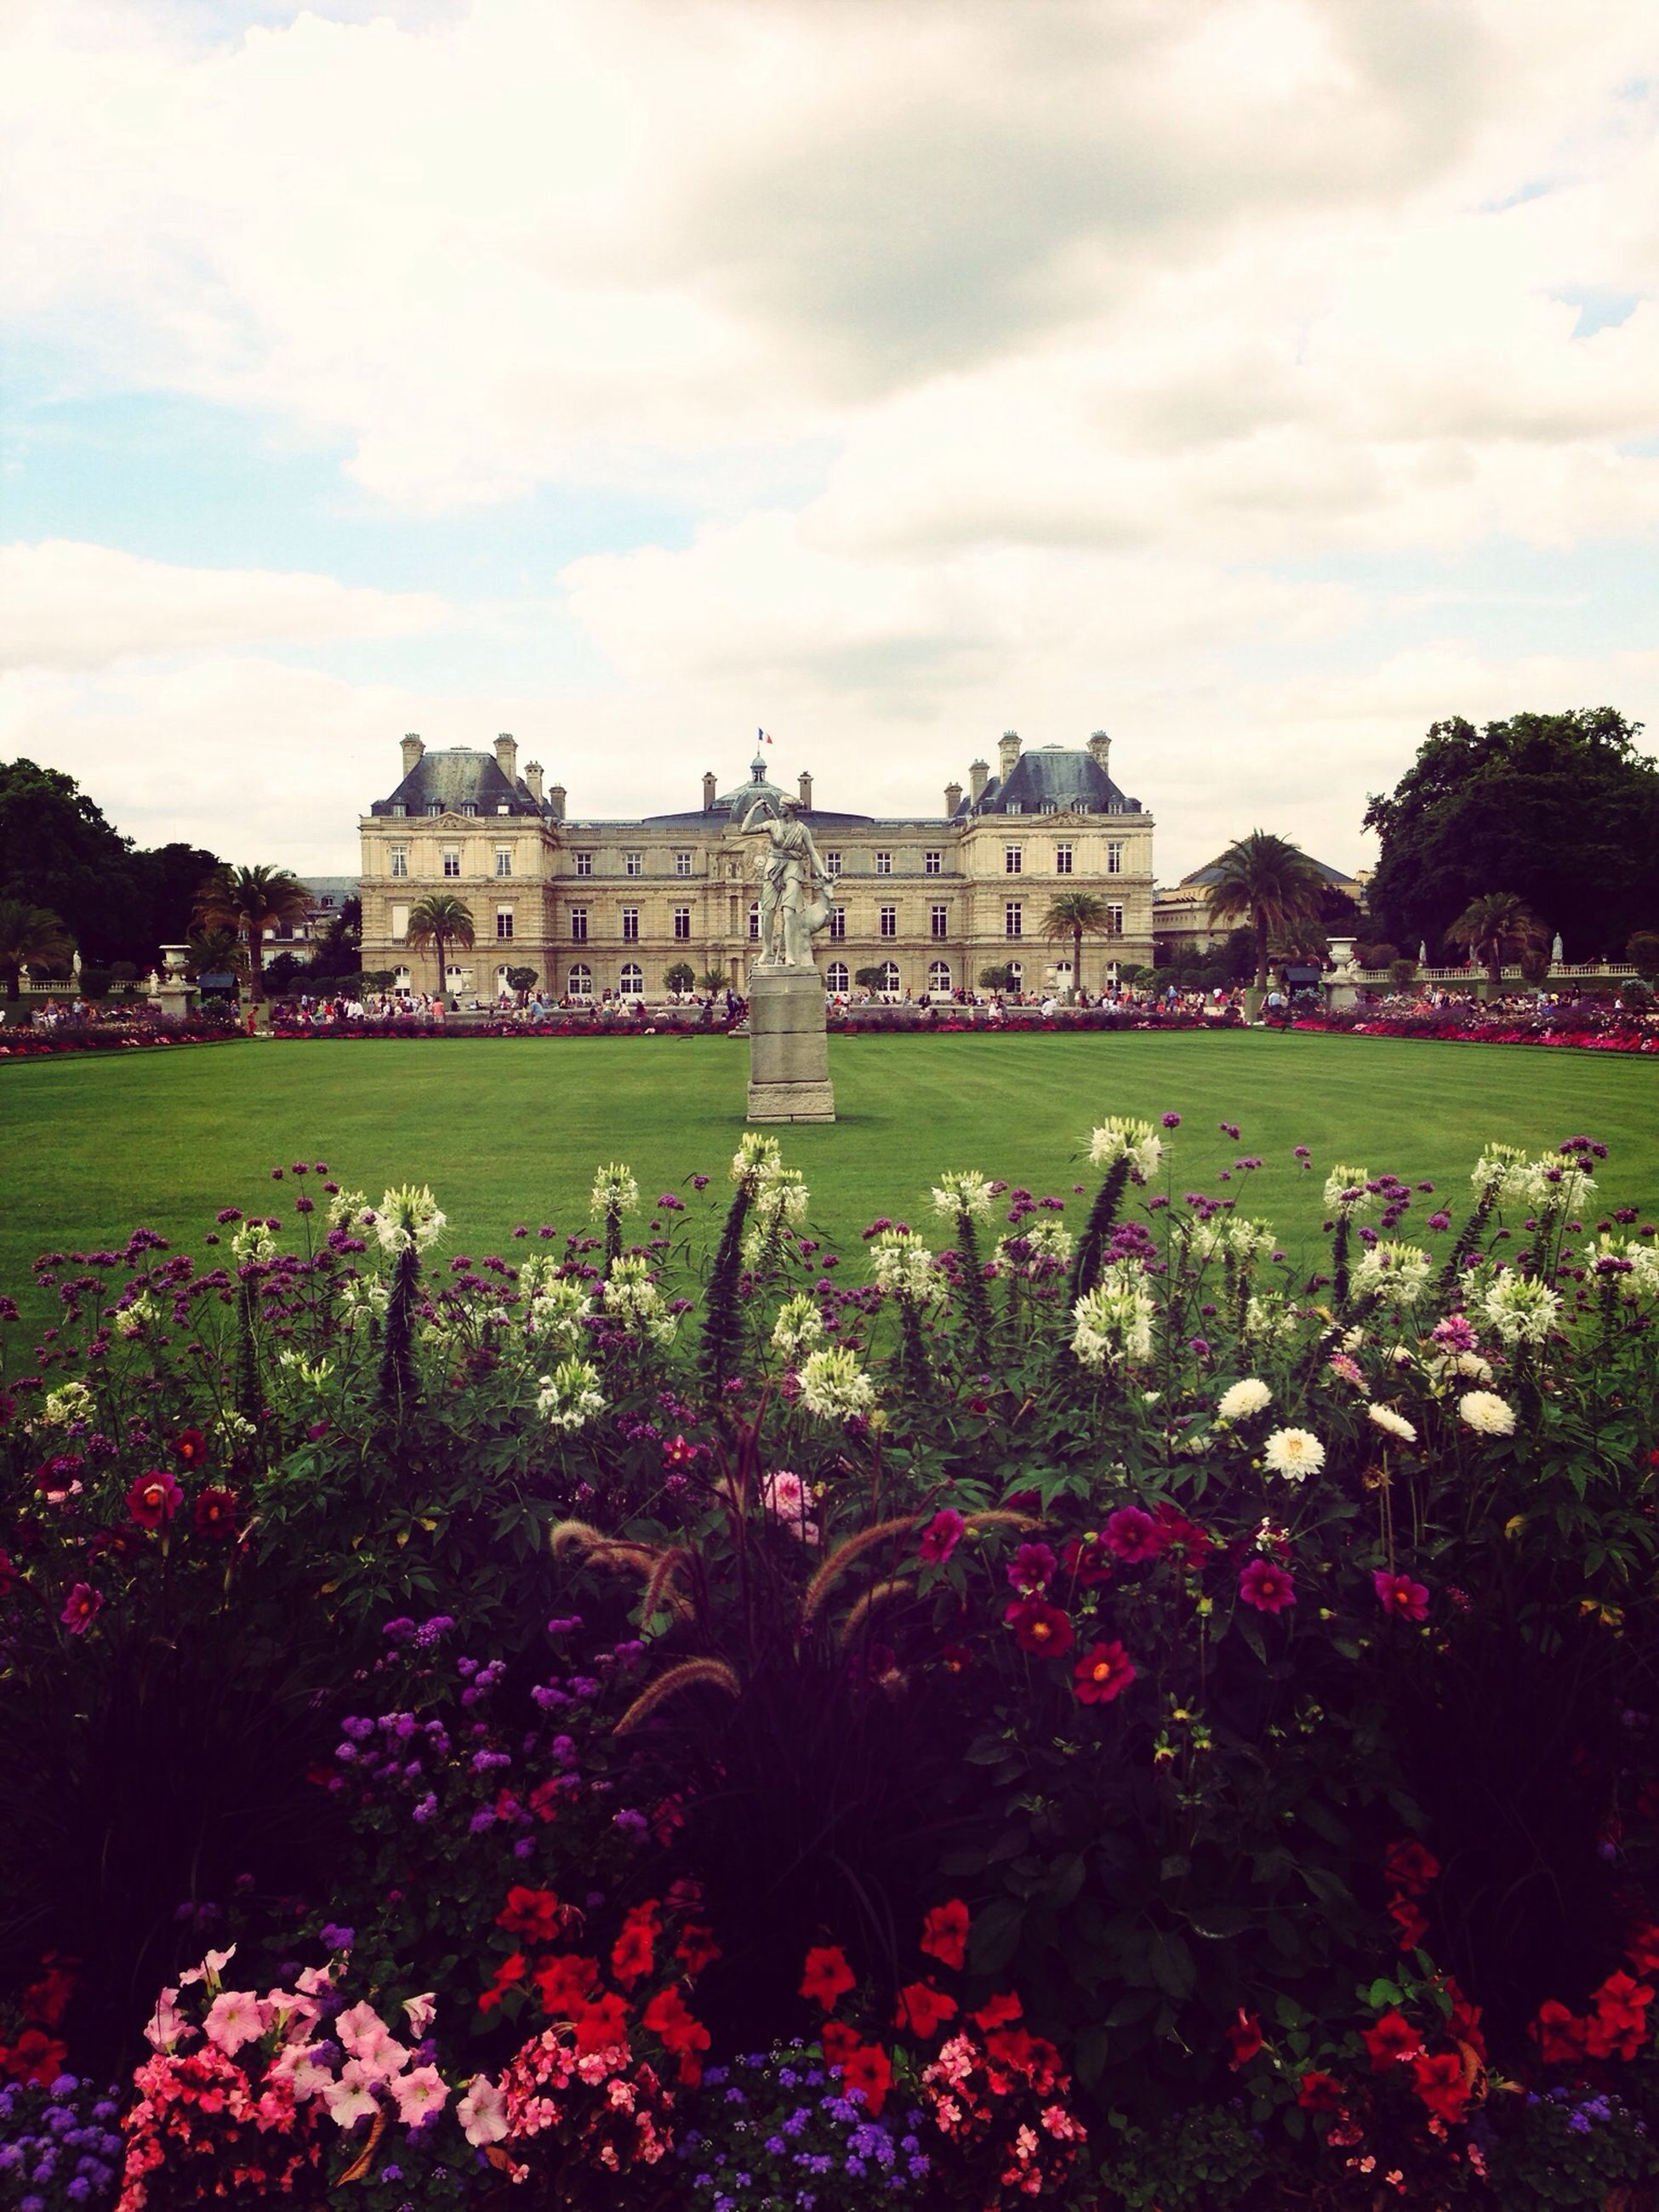 flower, sky, grass, architecture, building exterior, cloud - sky, built structure, plant, growth, field, lawn, cloudy, cloud, freshness, green color, nature, formal garden, fragility, park - man made space, beauty in nature